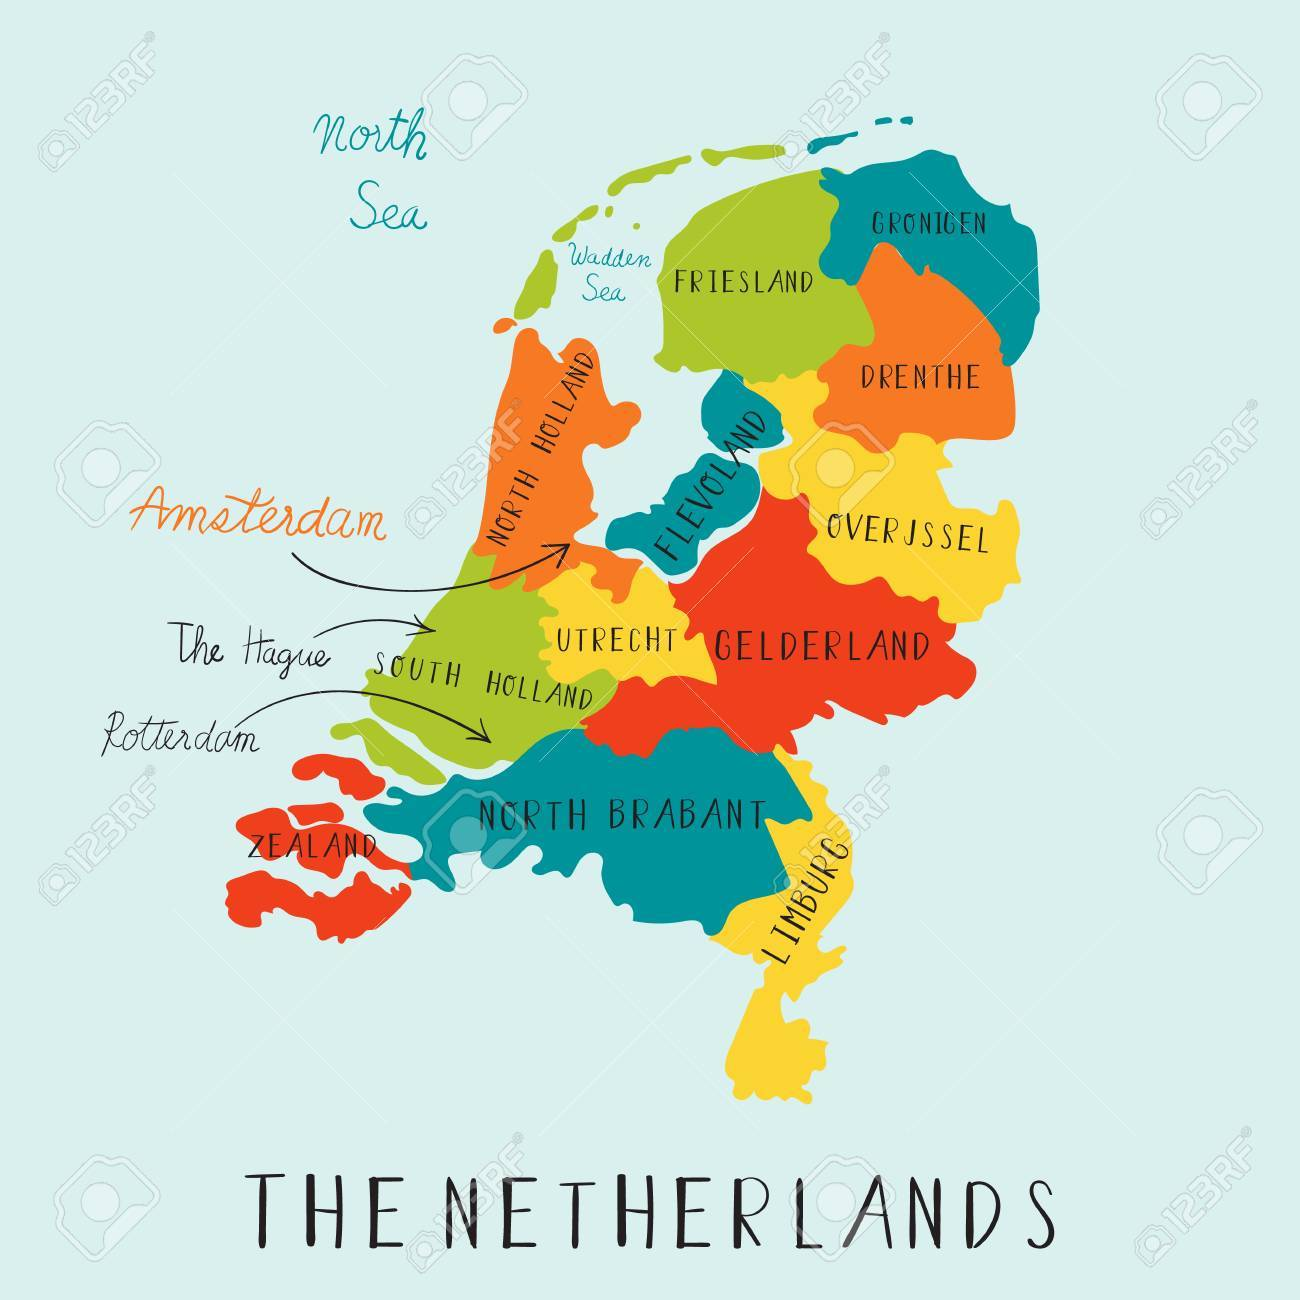 The Netherland maps hand drawing.illustration vector EPS 10 - 80047635